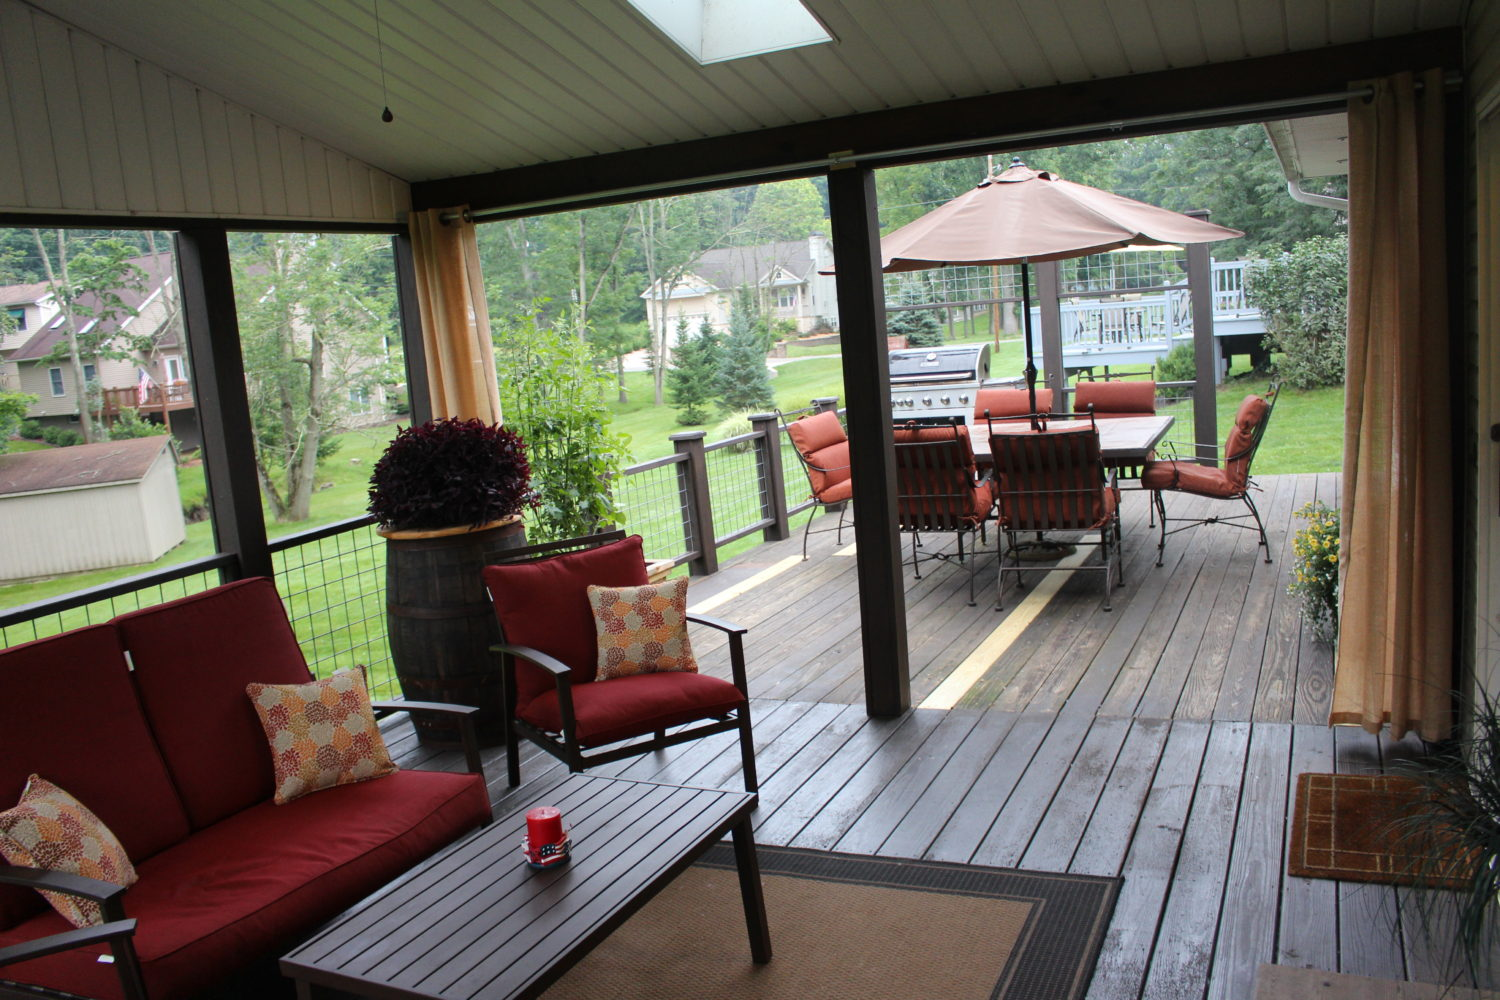 outdoor living room designs. Creating An Outdoor Living Room From A Screened In Porch And Deck  Old World Garden Farms